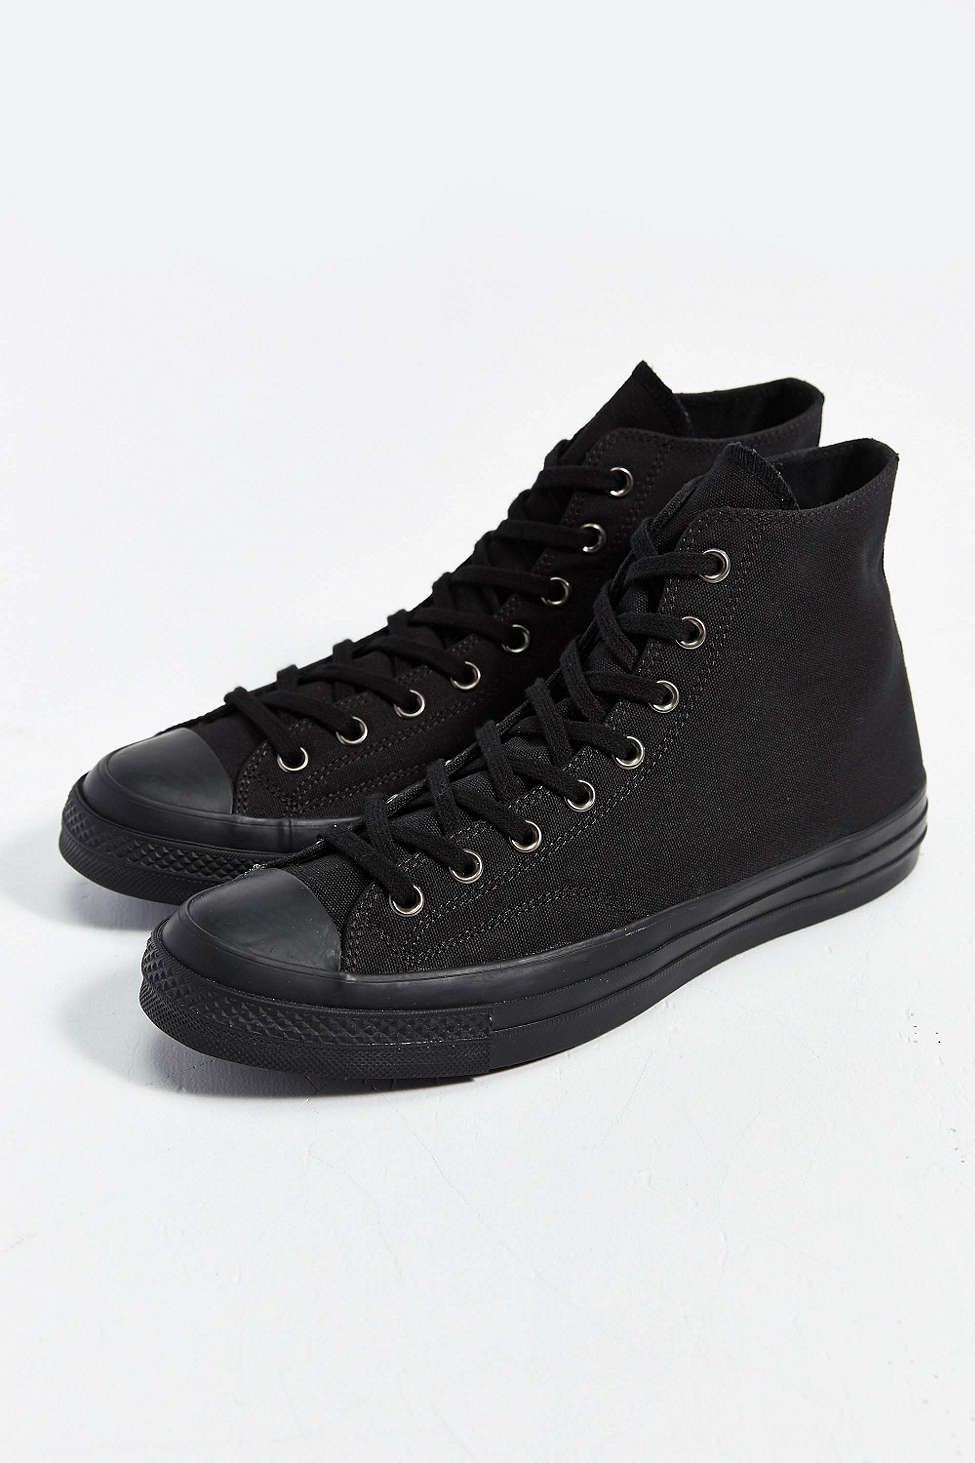 b974565c3549 Converse Chuck Taylor All Star 70s Mono High-Top Sneaker in 2019 ...